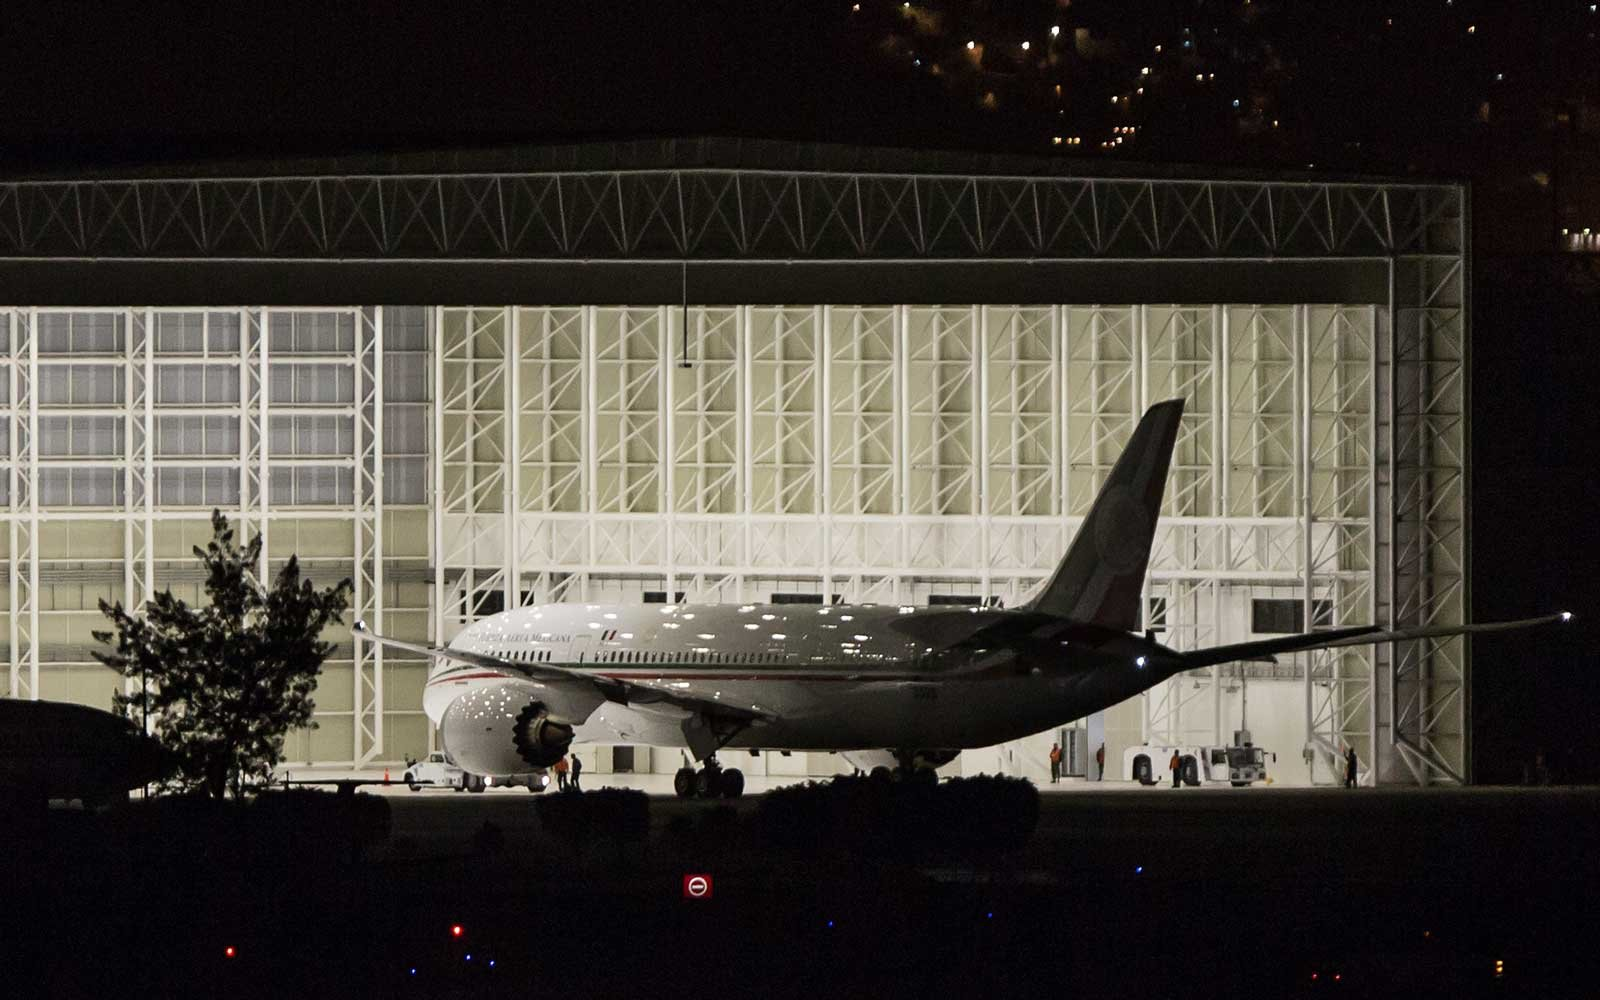 Mexico's new presidential plane Boeing 787-8 Dreamliner, Jose Maria Morelos